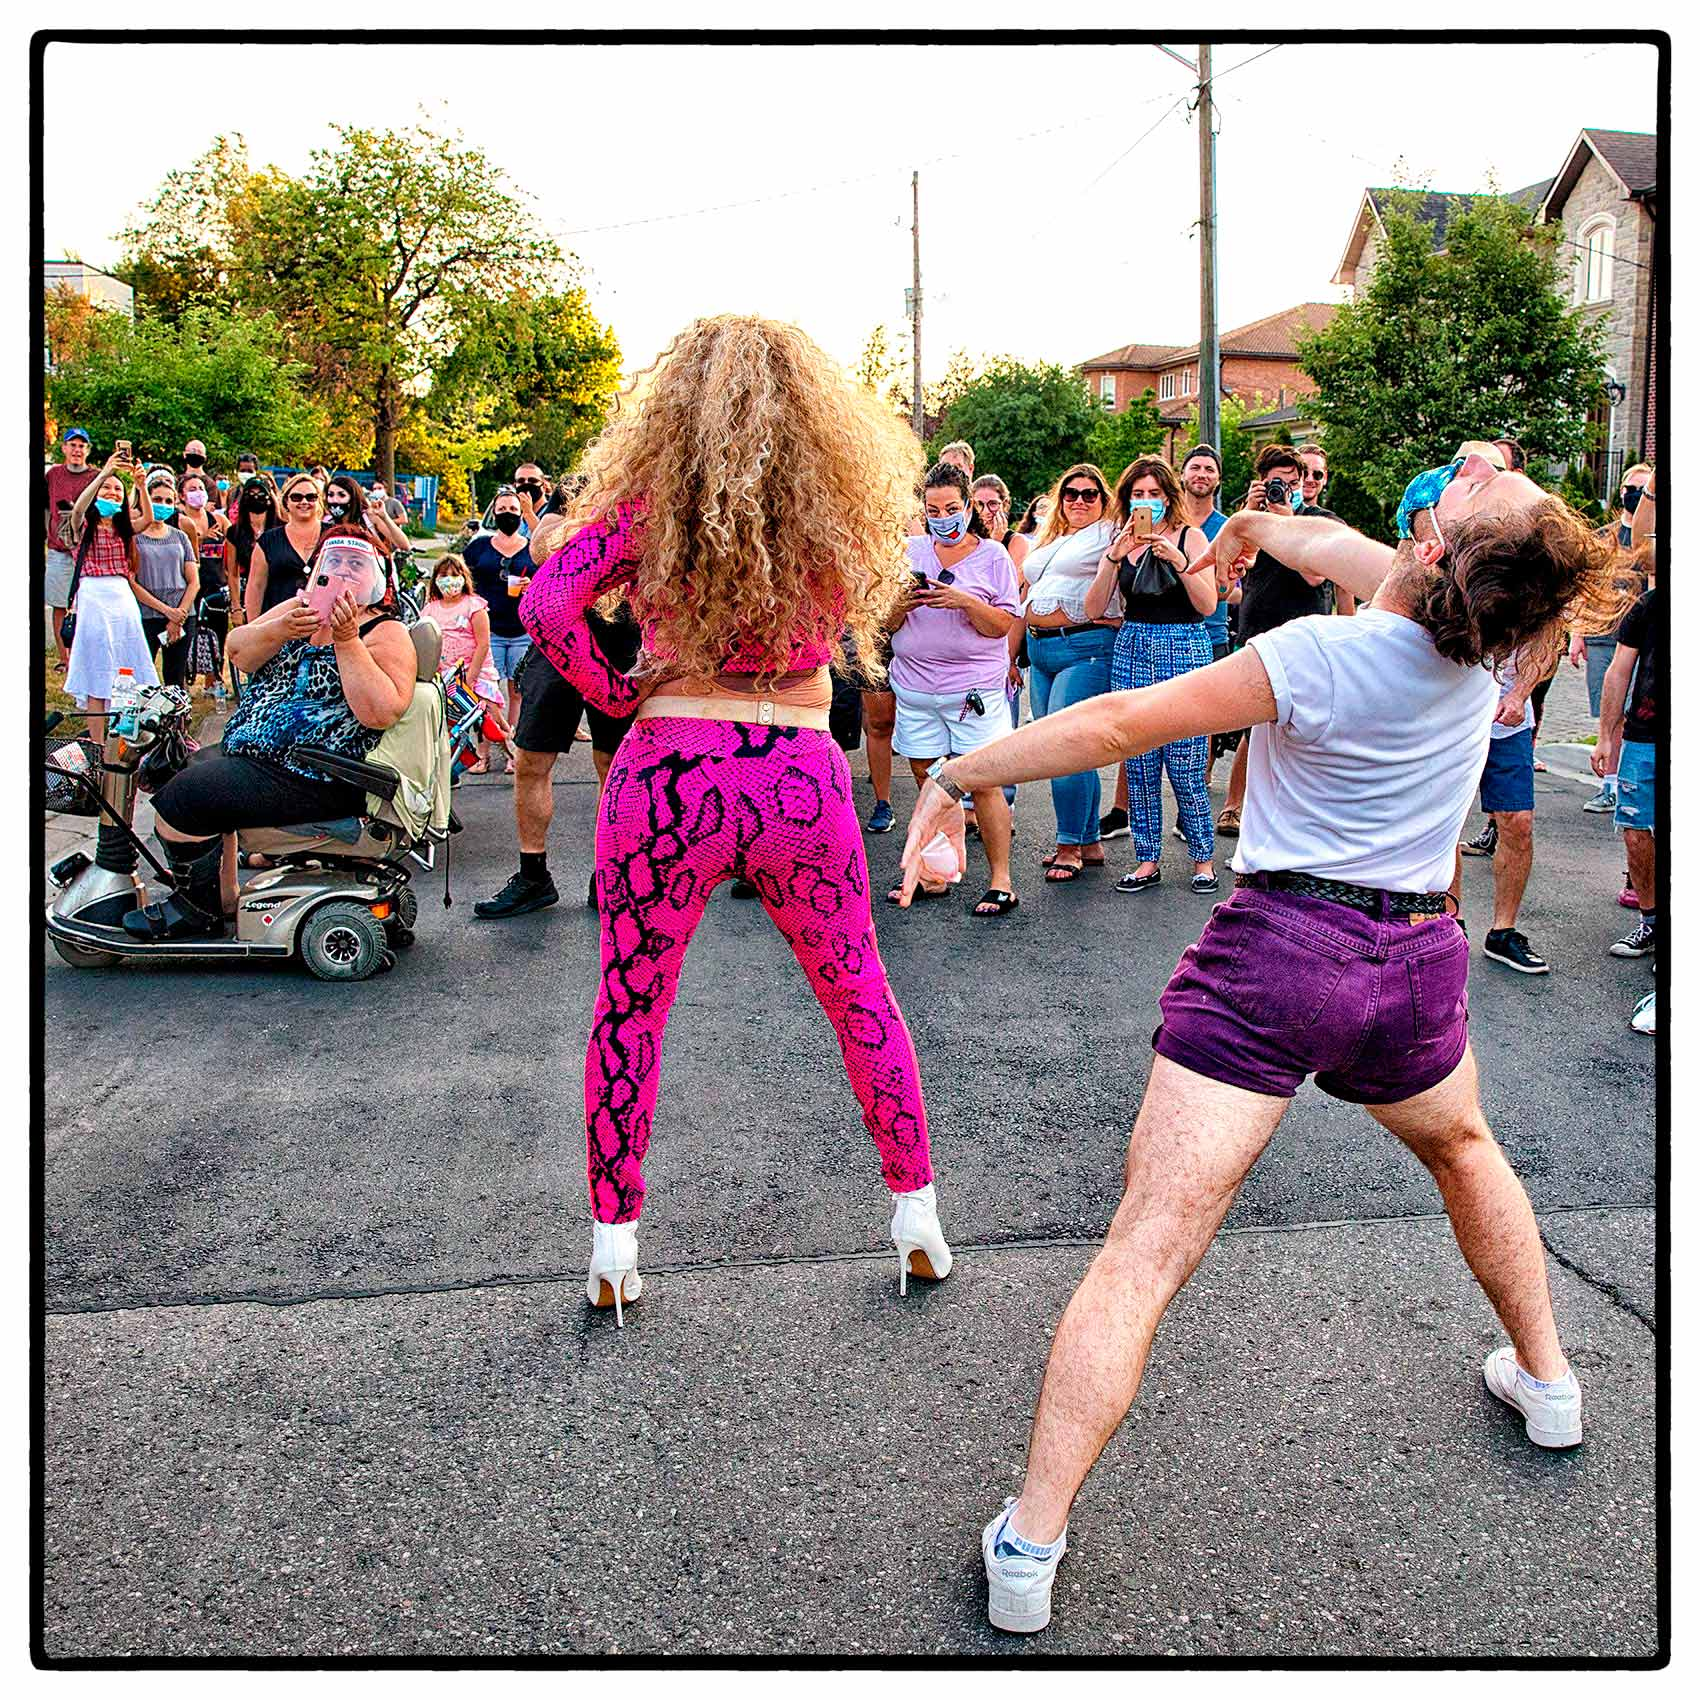 a man dancing behind a drag queen during a street show in north york in toronto